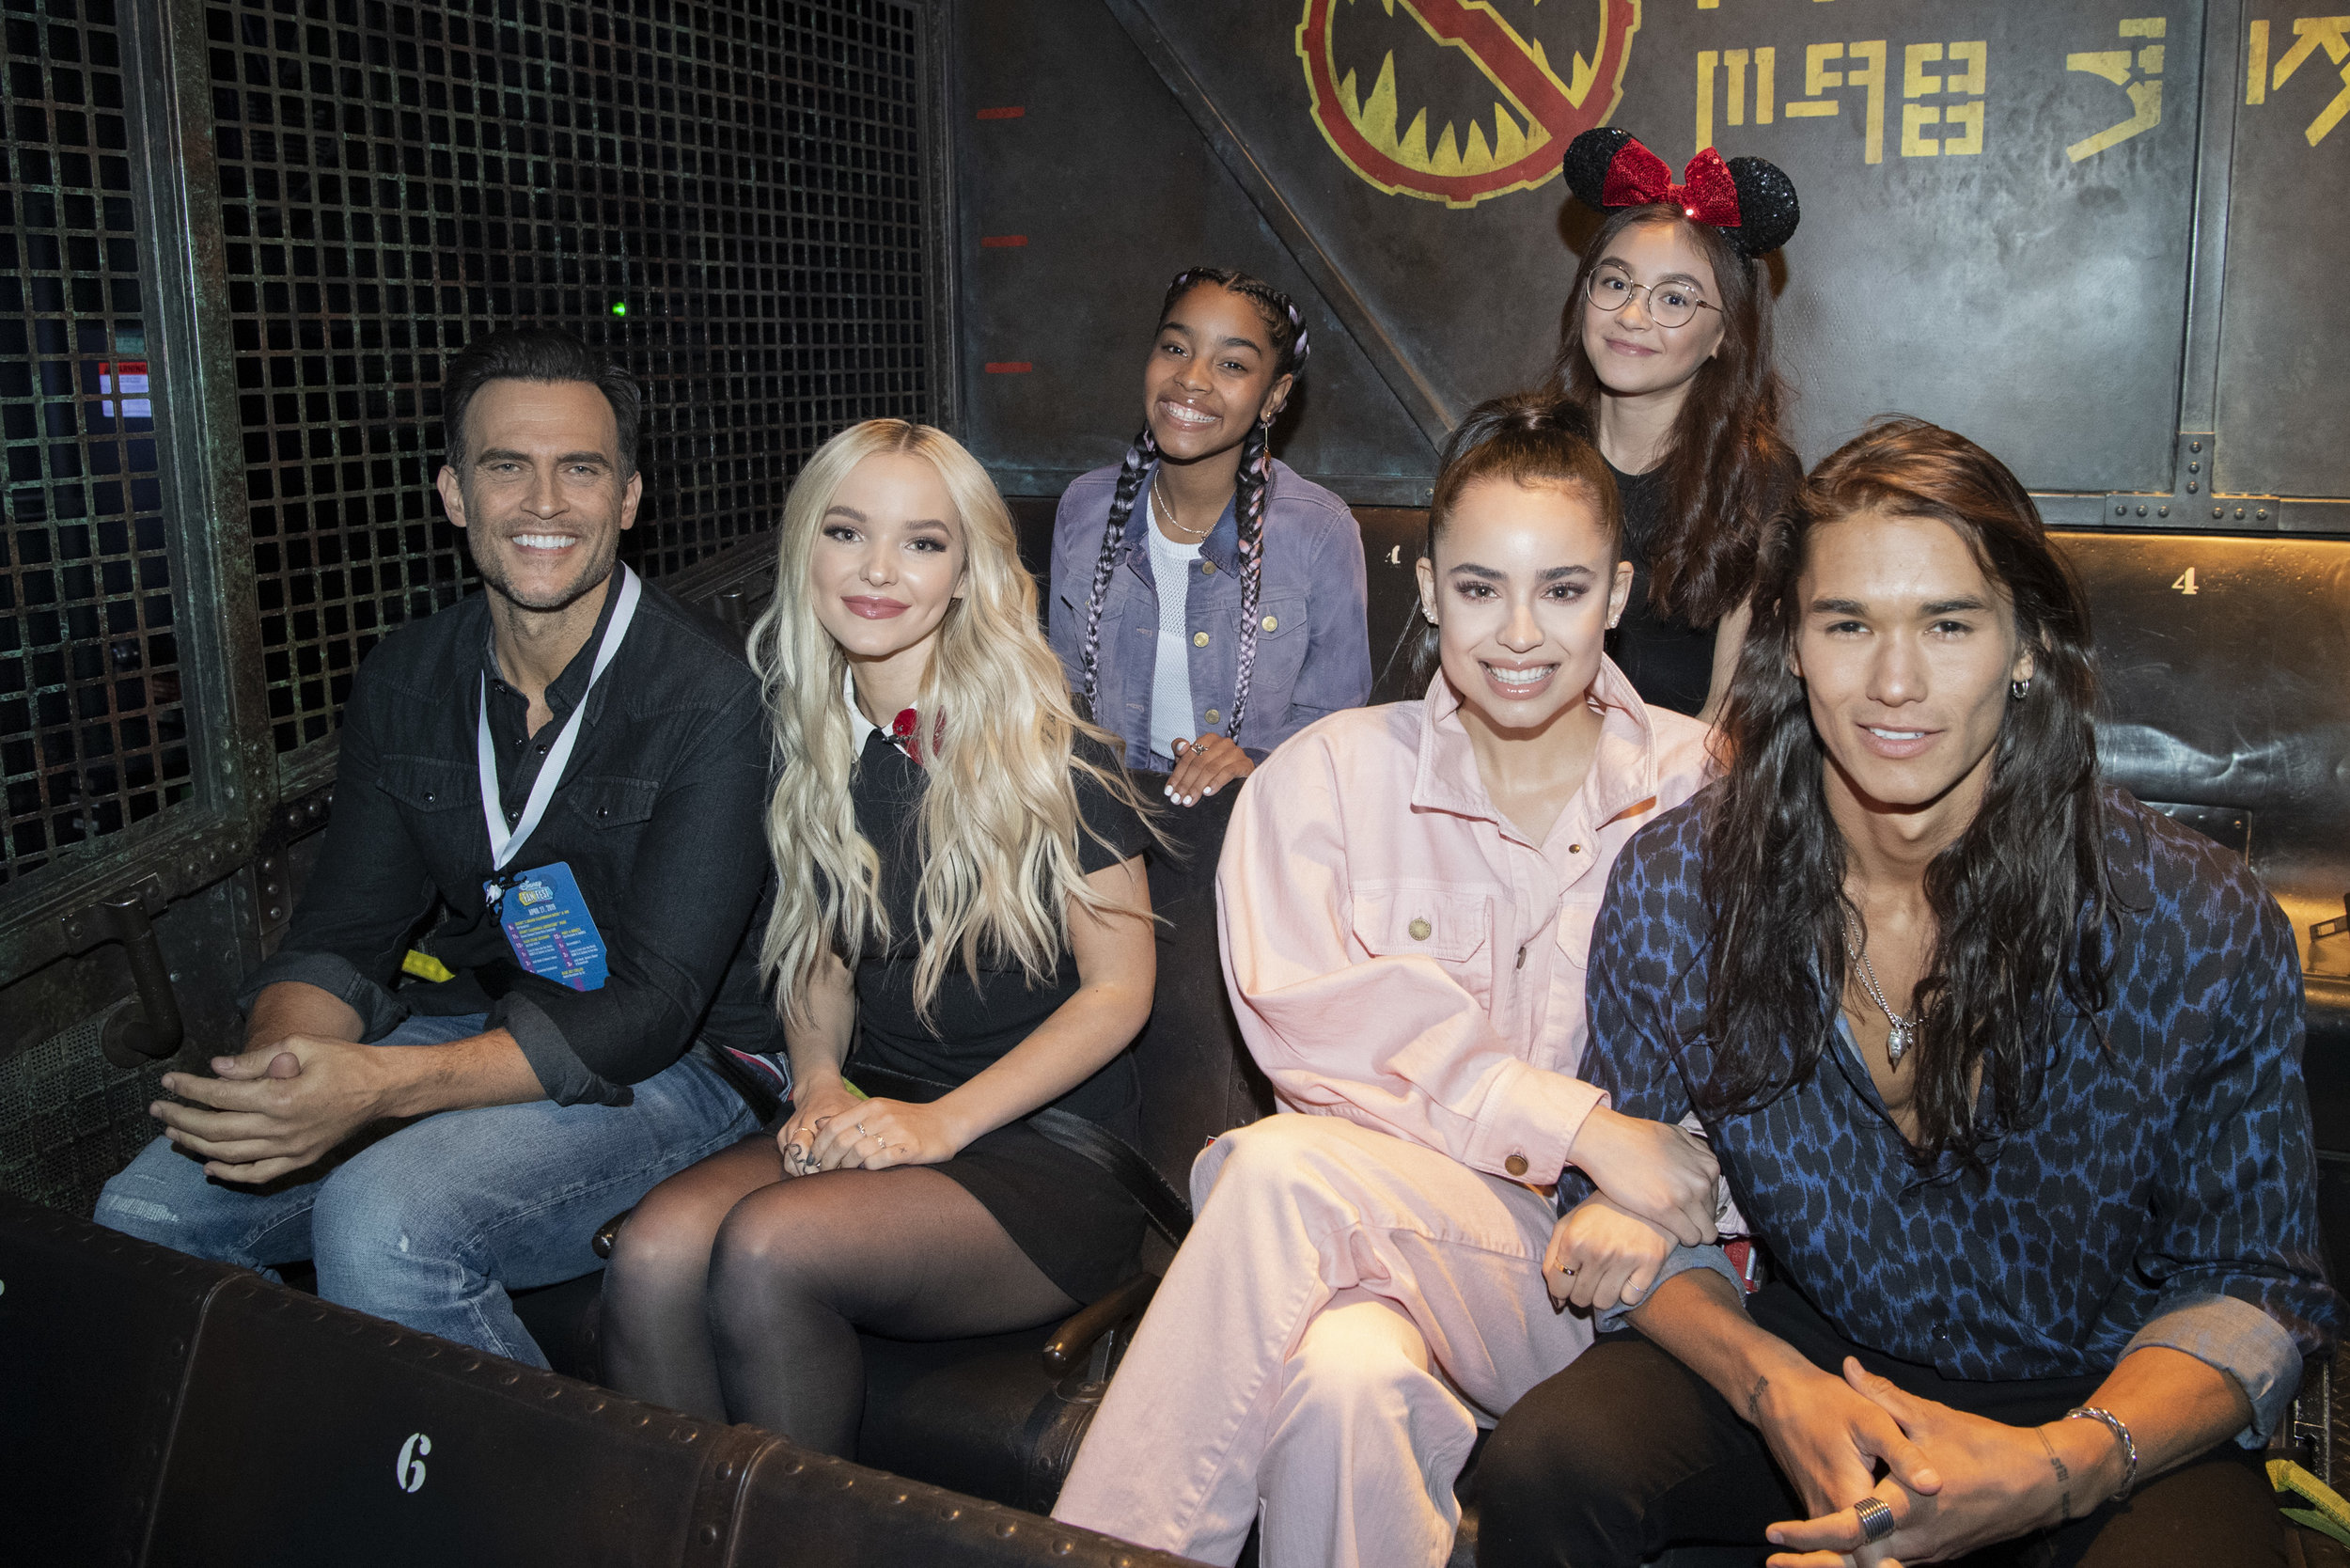 Back row: Marie and Anna Cathcart. Front row (from left): Cheyenne Jackson, Dove Cameron, Sofia Carson, and Booboo Stewart